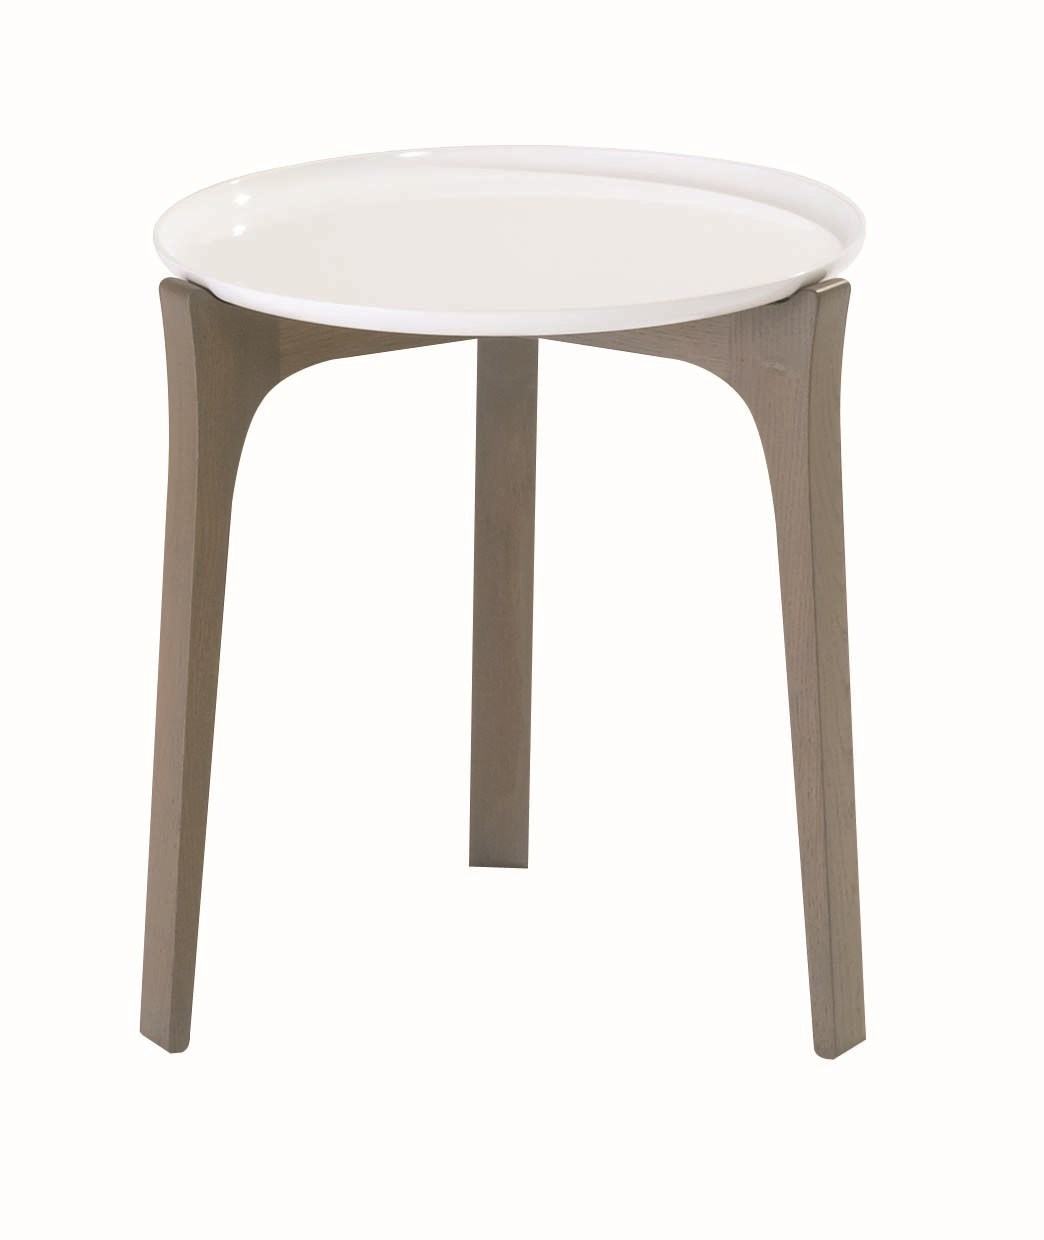 Table d 39 appoint hautes ronde bow collection les - Table d appoint ronde ...